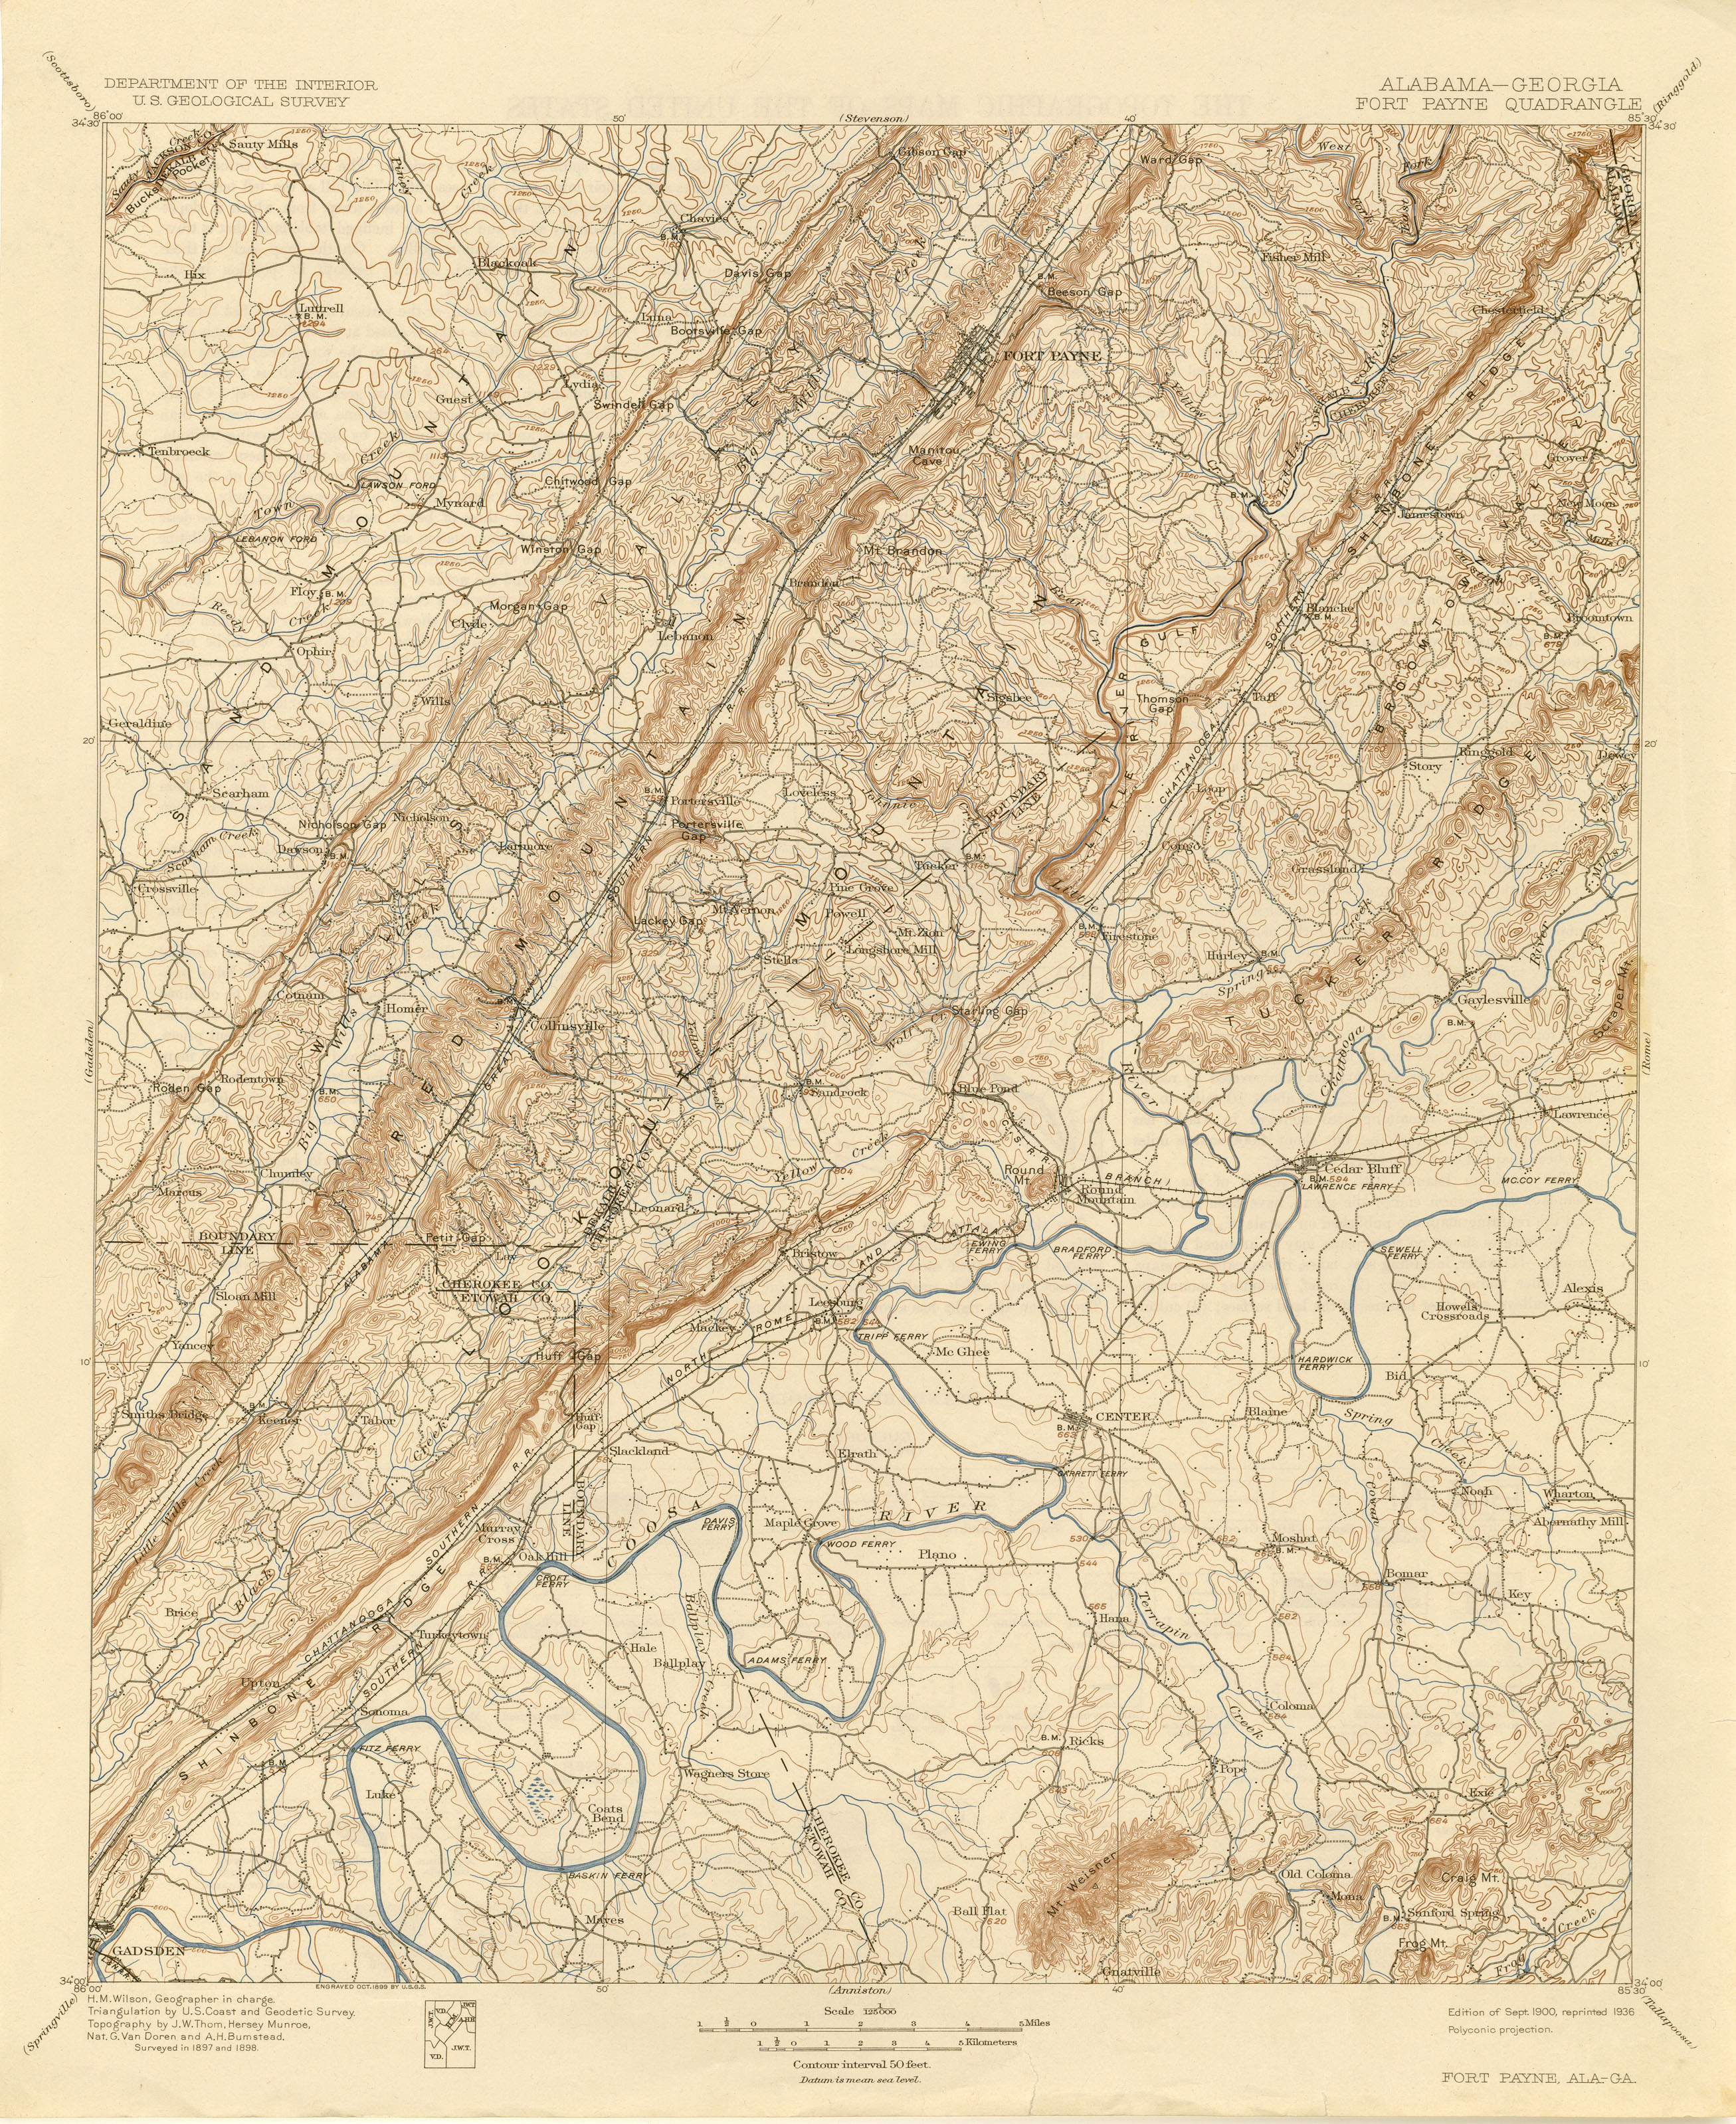 Georgia Historical Topographic Maps - Perry-Castañeda Map Collection ...